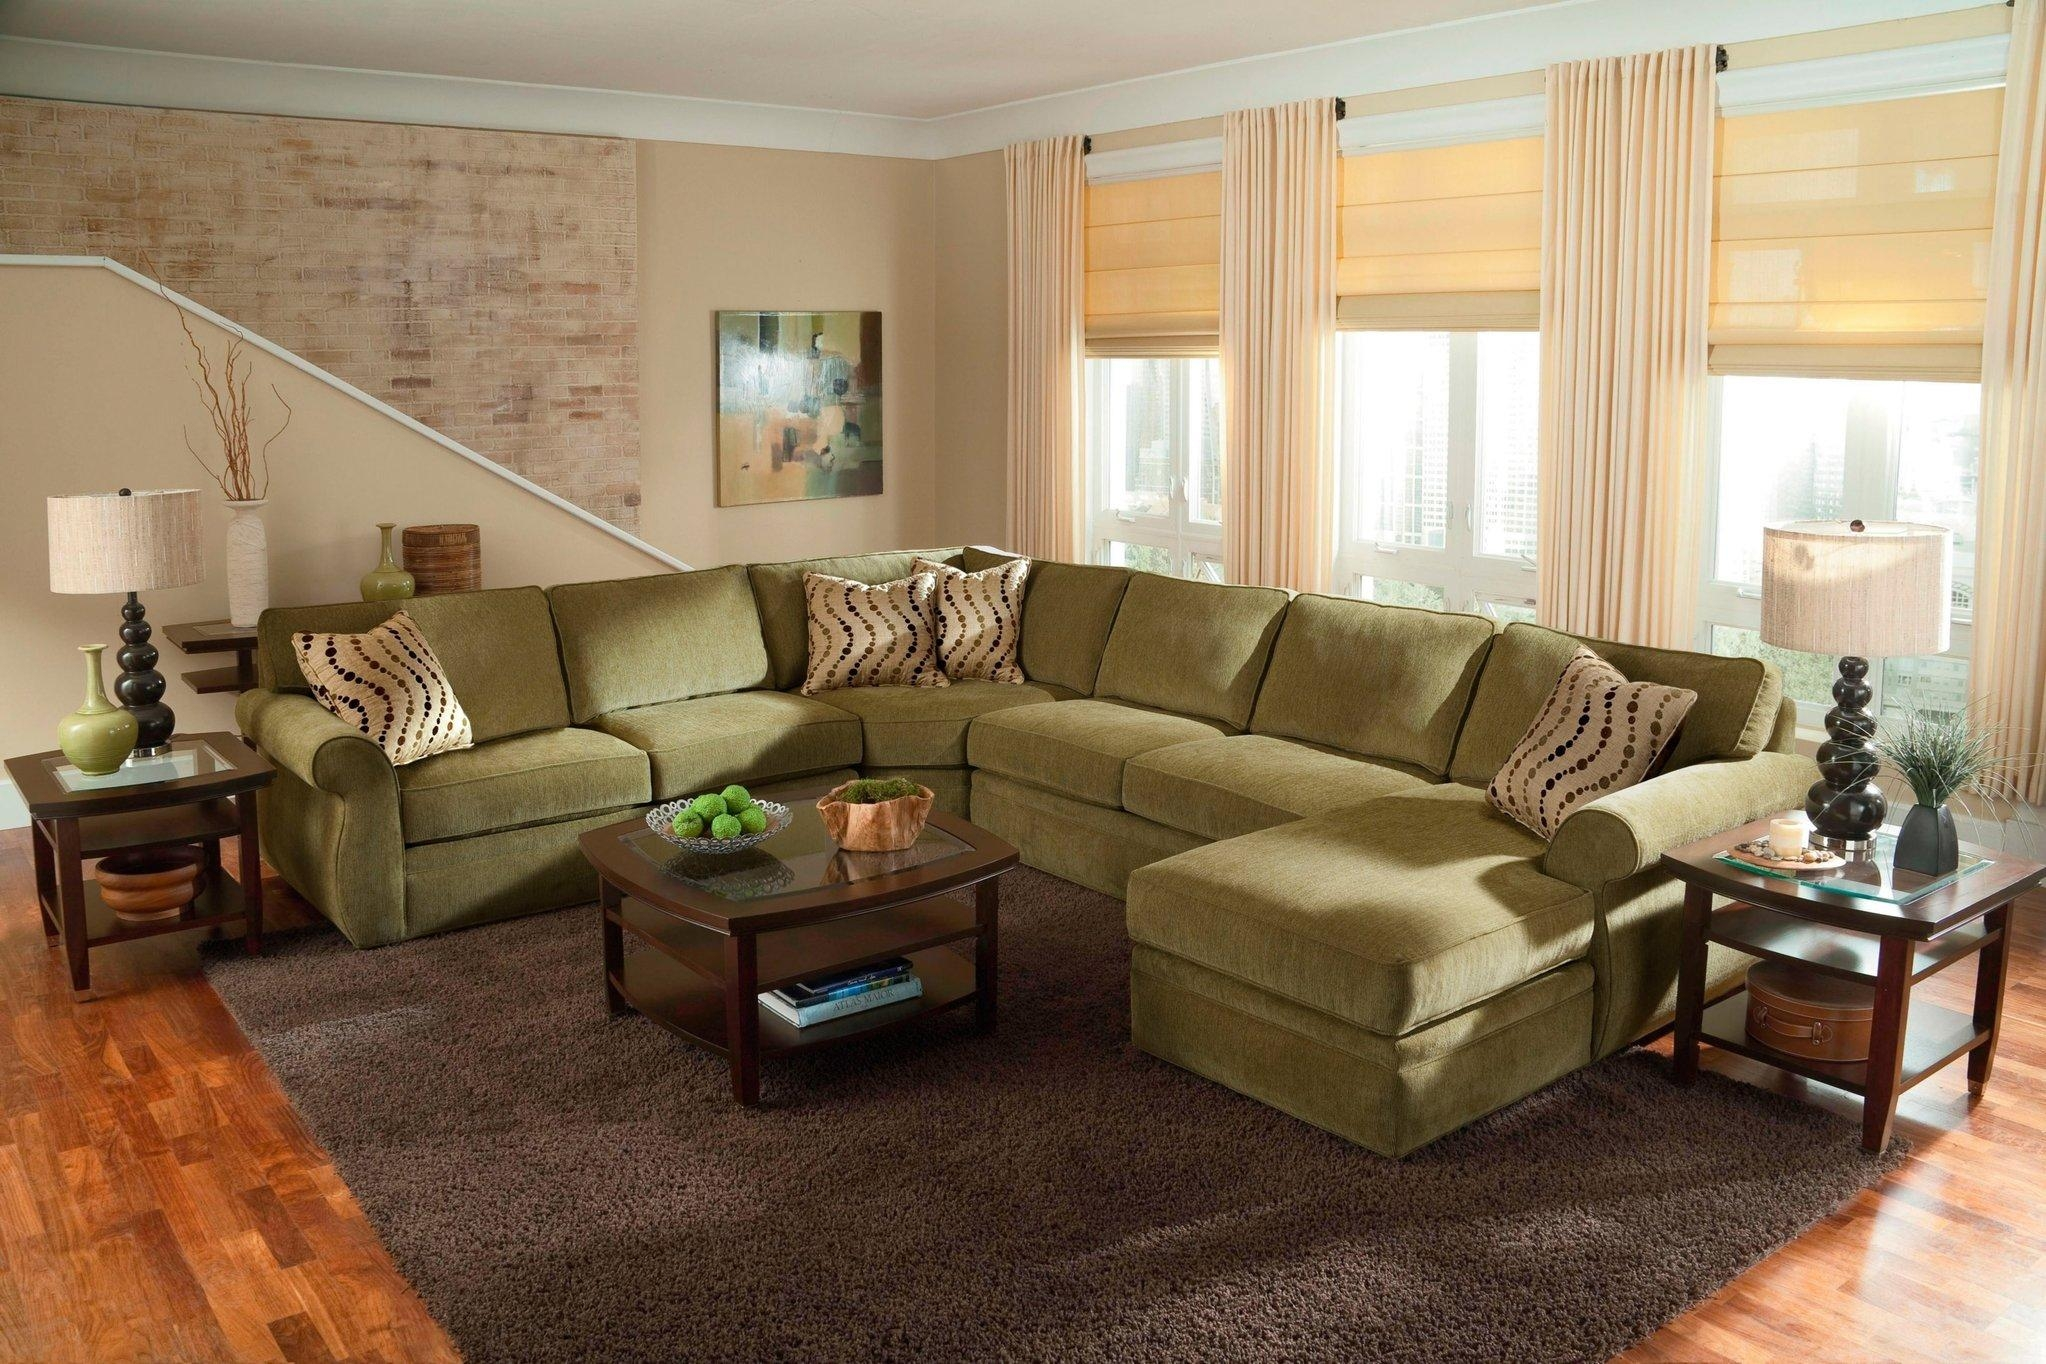 Sofas Center : Huge Brown Leather Sectional Sofa With Chaise Inside Huge Leather Sectional (View 16 of 20)